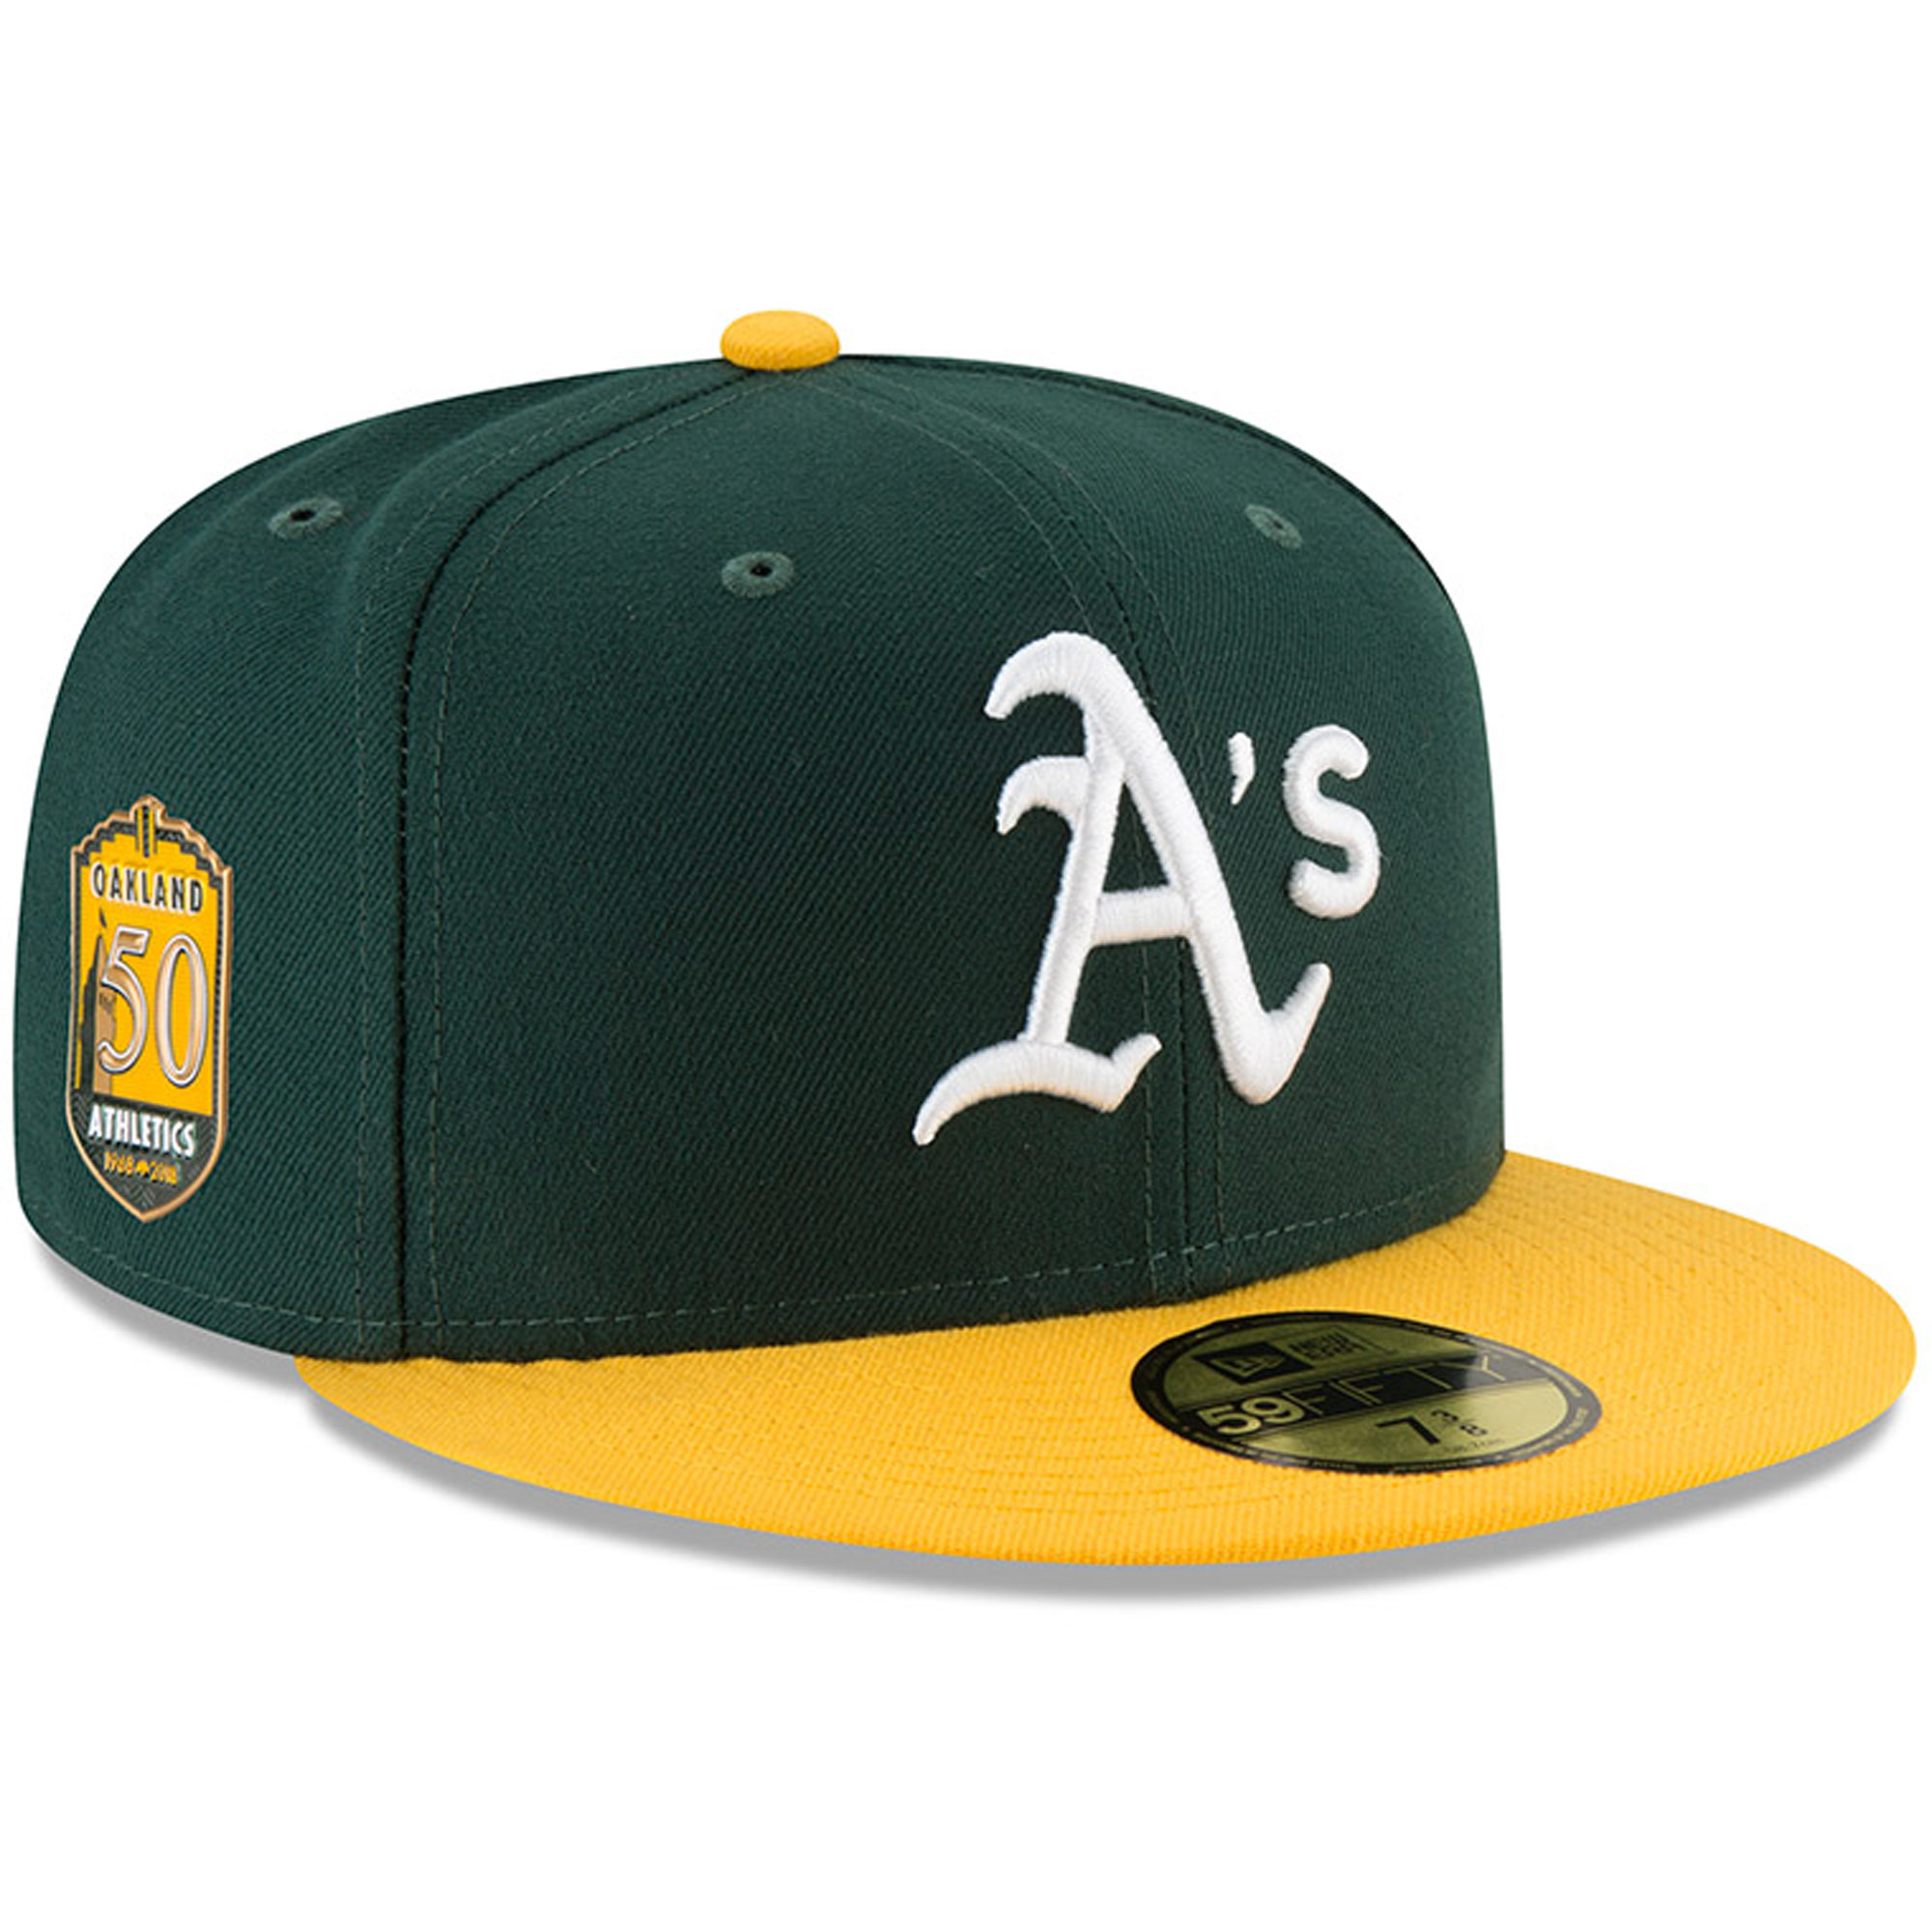 Oakland Athletics New Era Home 50th Anniversary Authentic Collection On-Field 59FIFTY Fitted Hat - Green/Gold